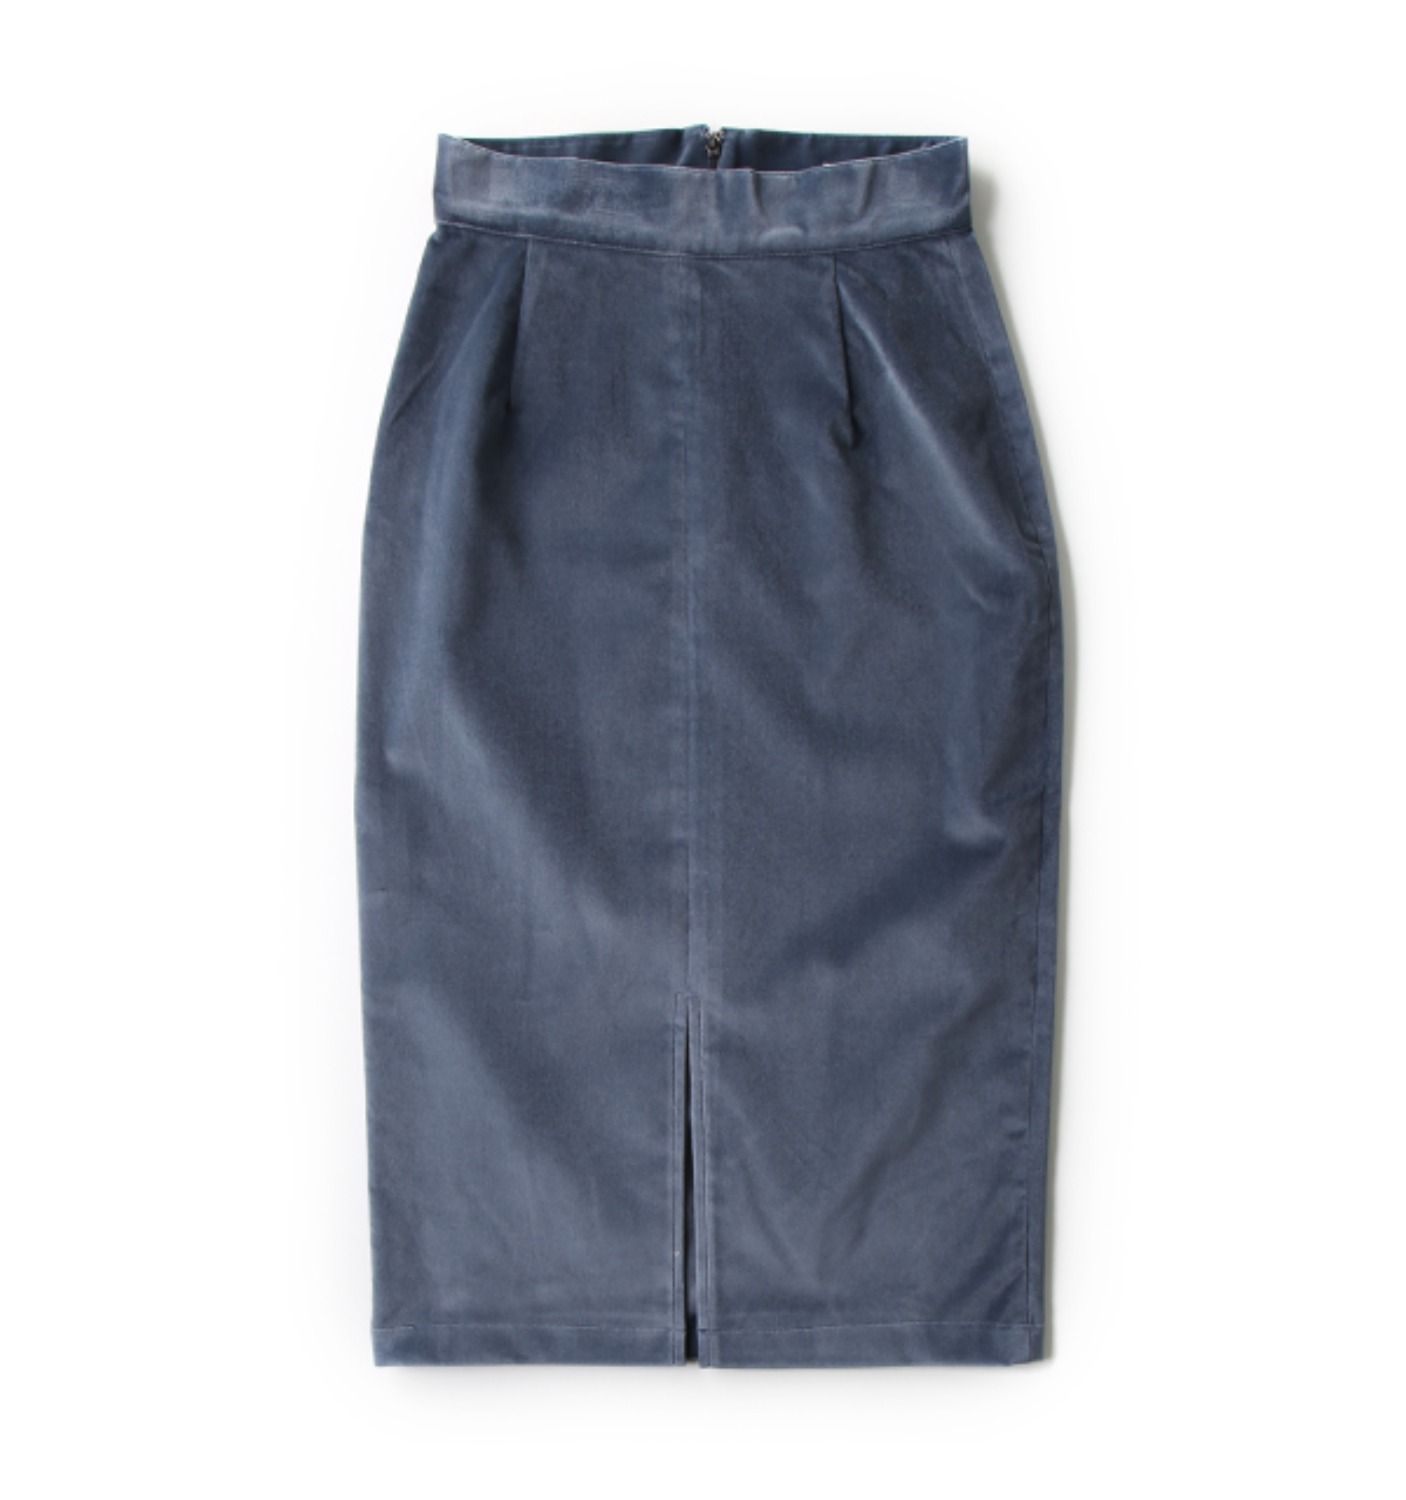 DE VELVET PENCIL SKIRT CEMENT BLUE